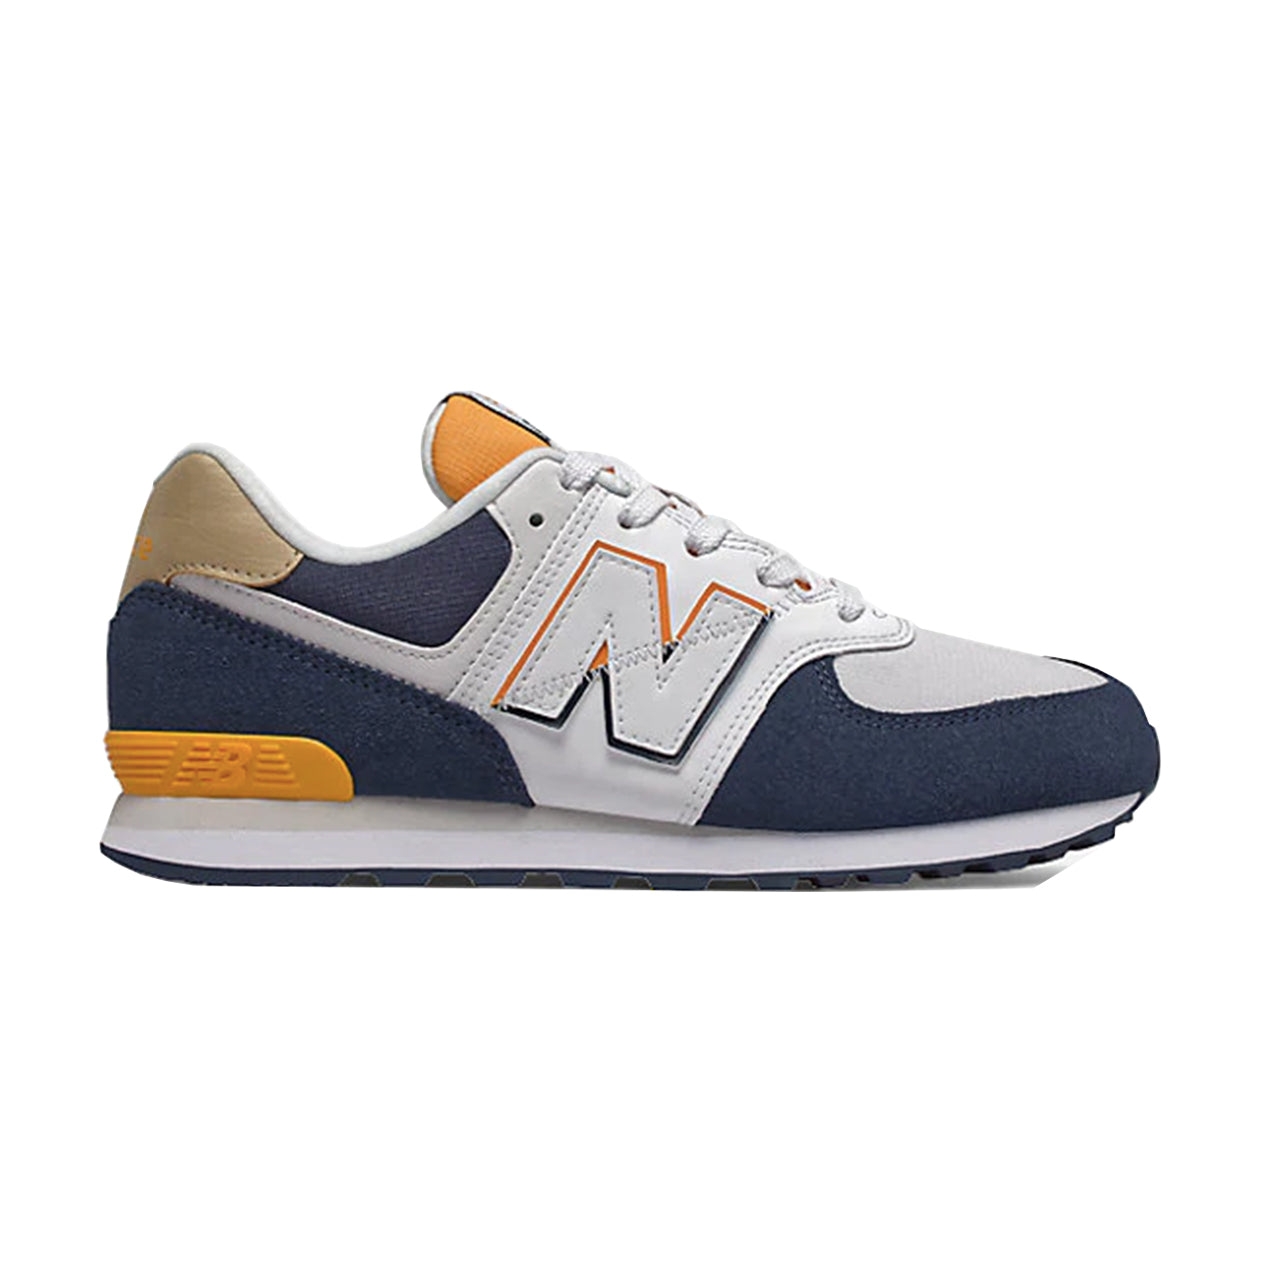 574 yellow blue new balance mens ottawa